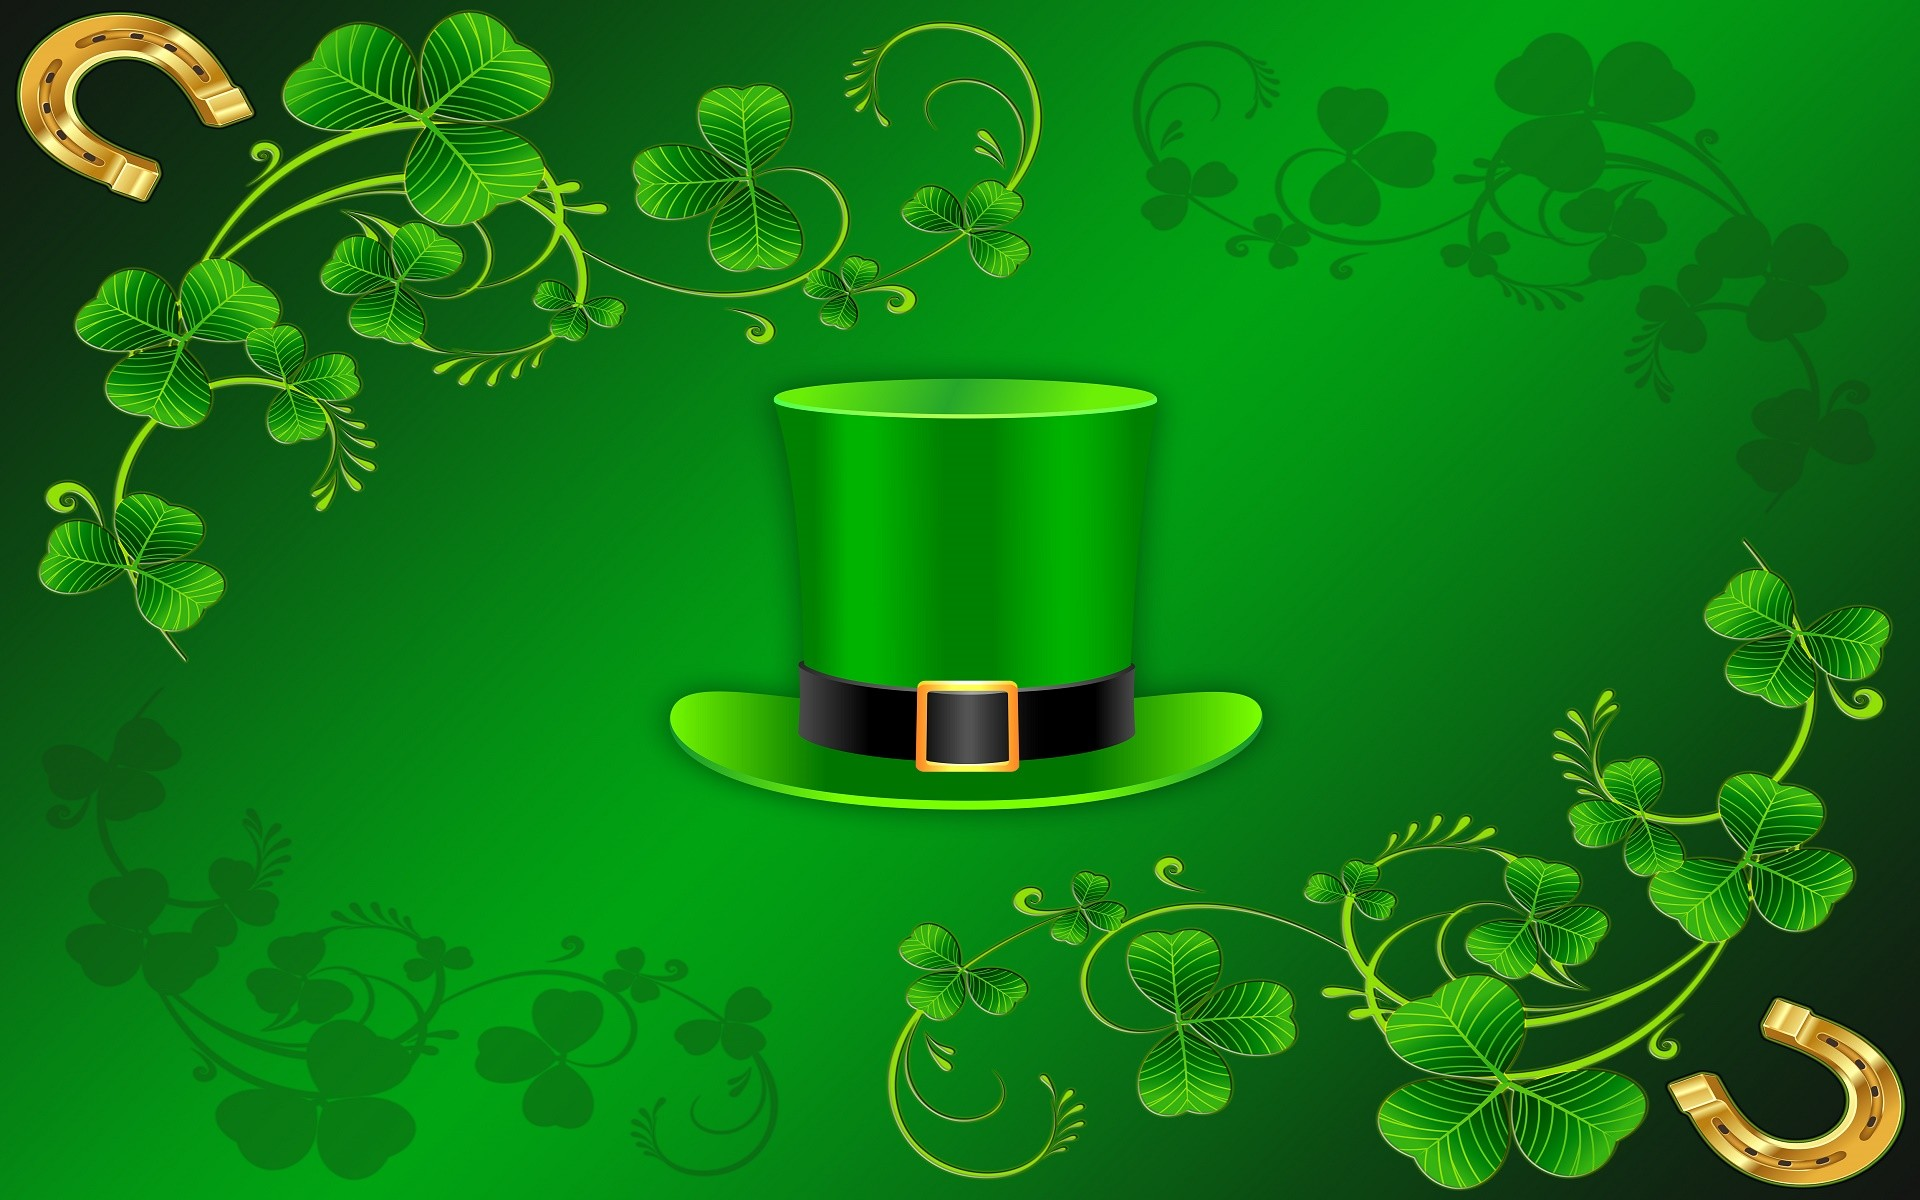 Saint Patrick Day Wallpaper 62 images